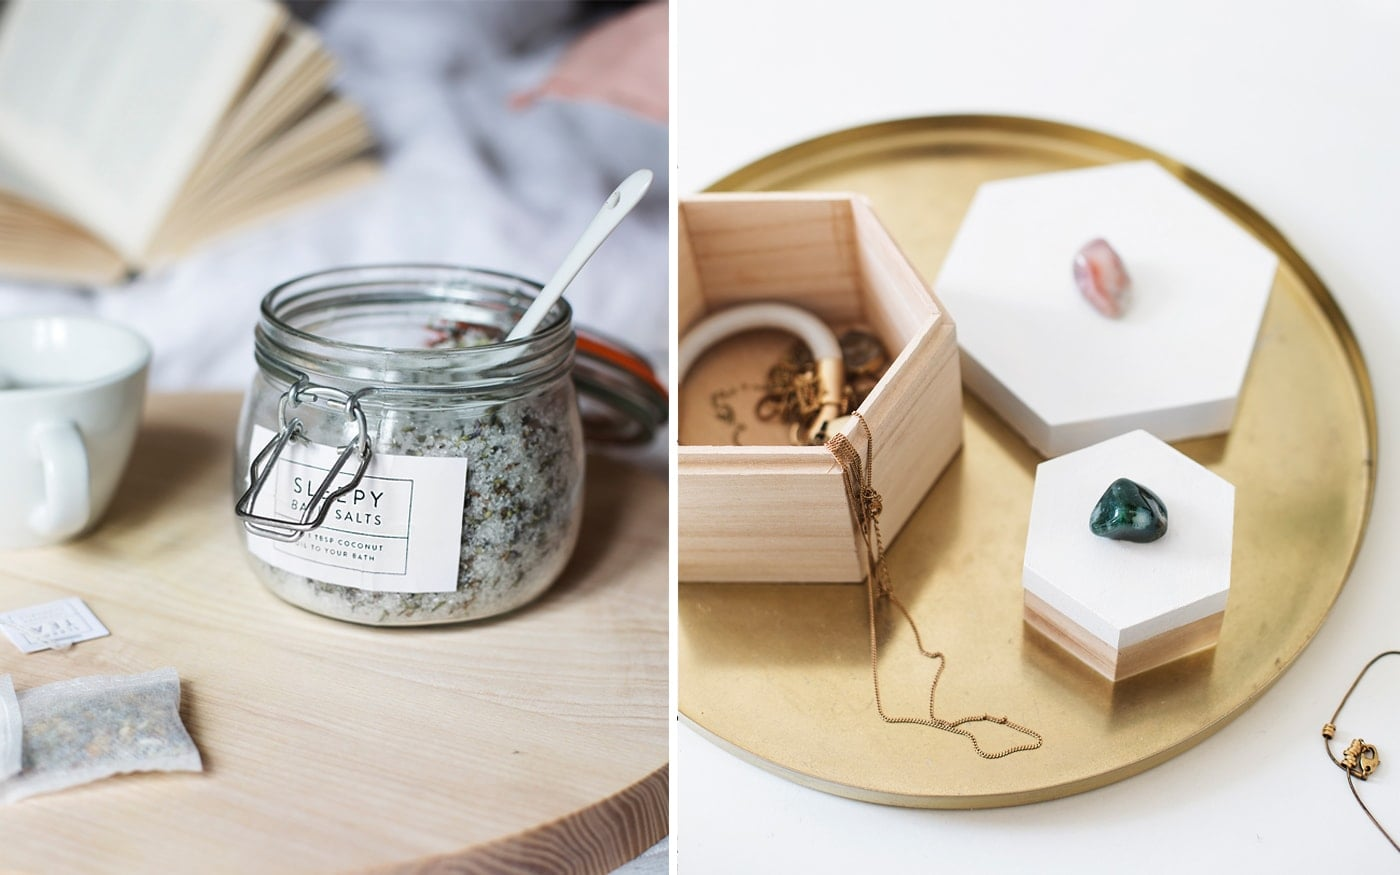 20-gifts-to-make-yourself-this-christmas-diy-gift-ideas-4